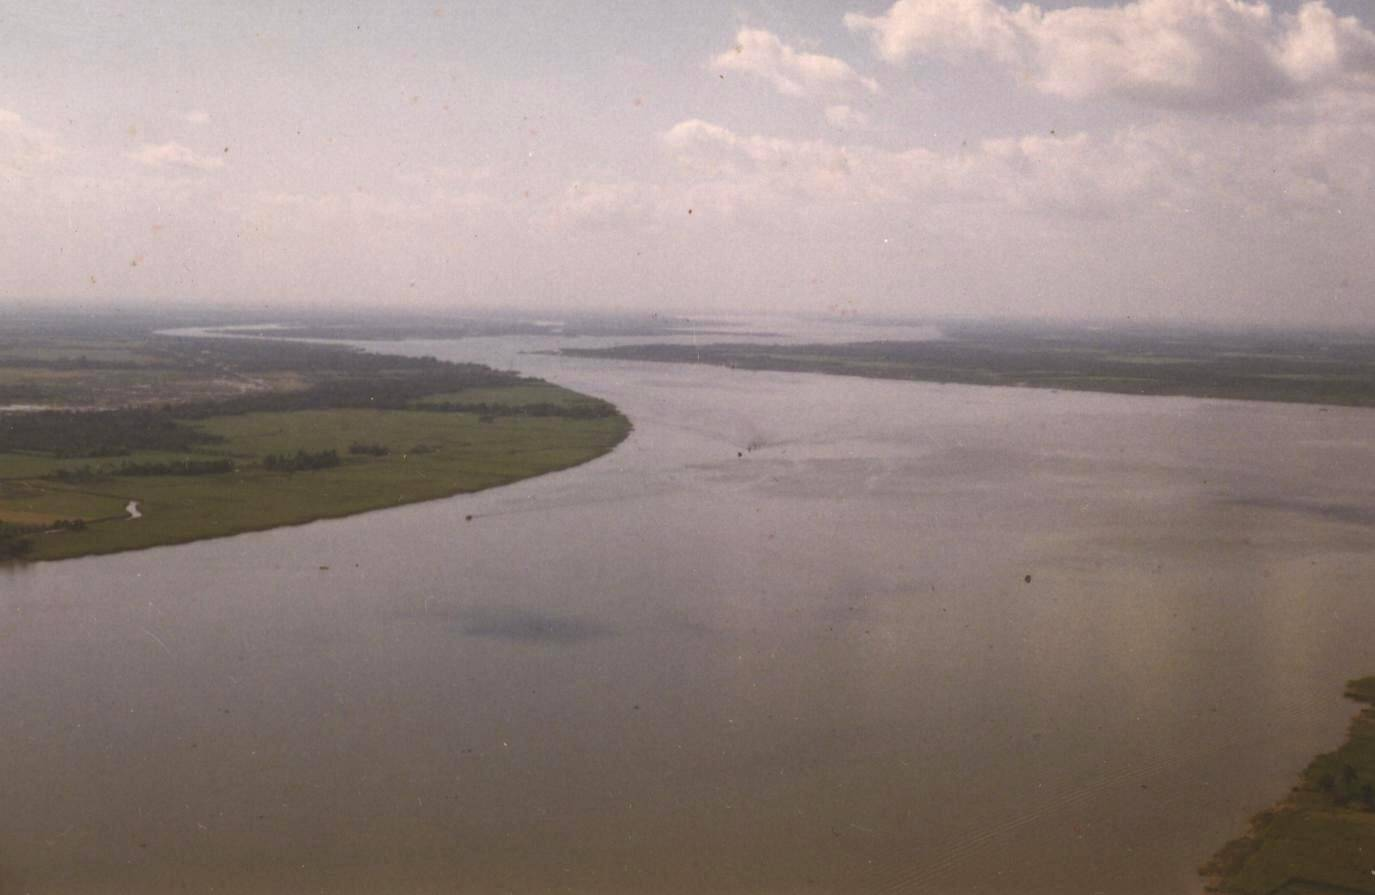 Overhead shot of a wide river.